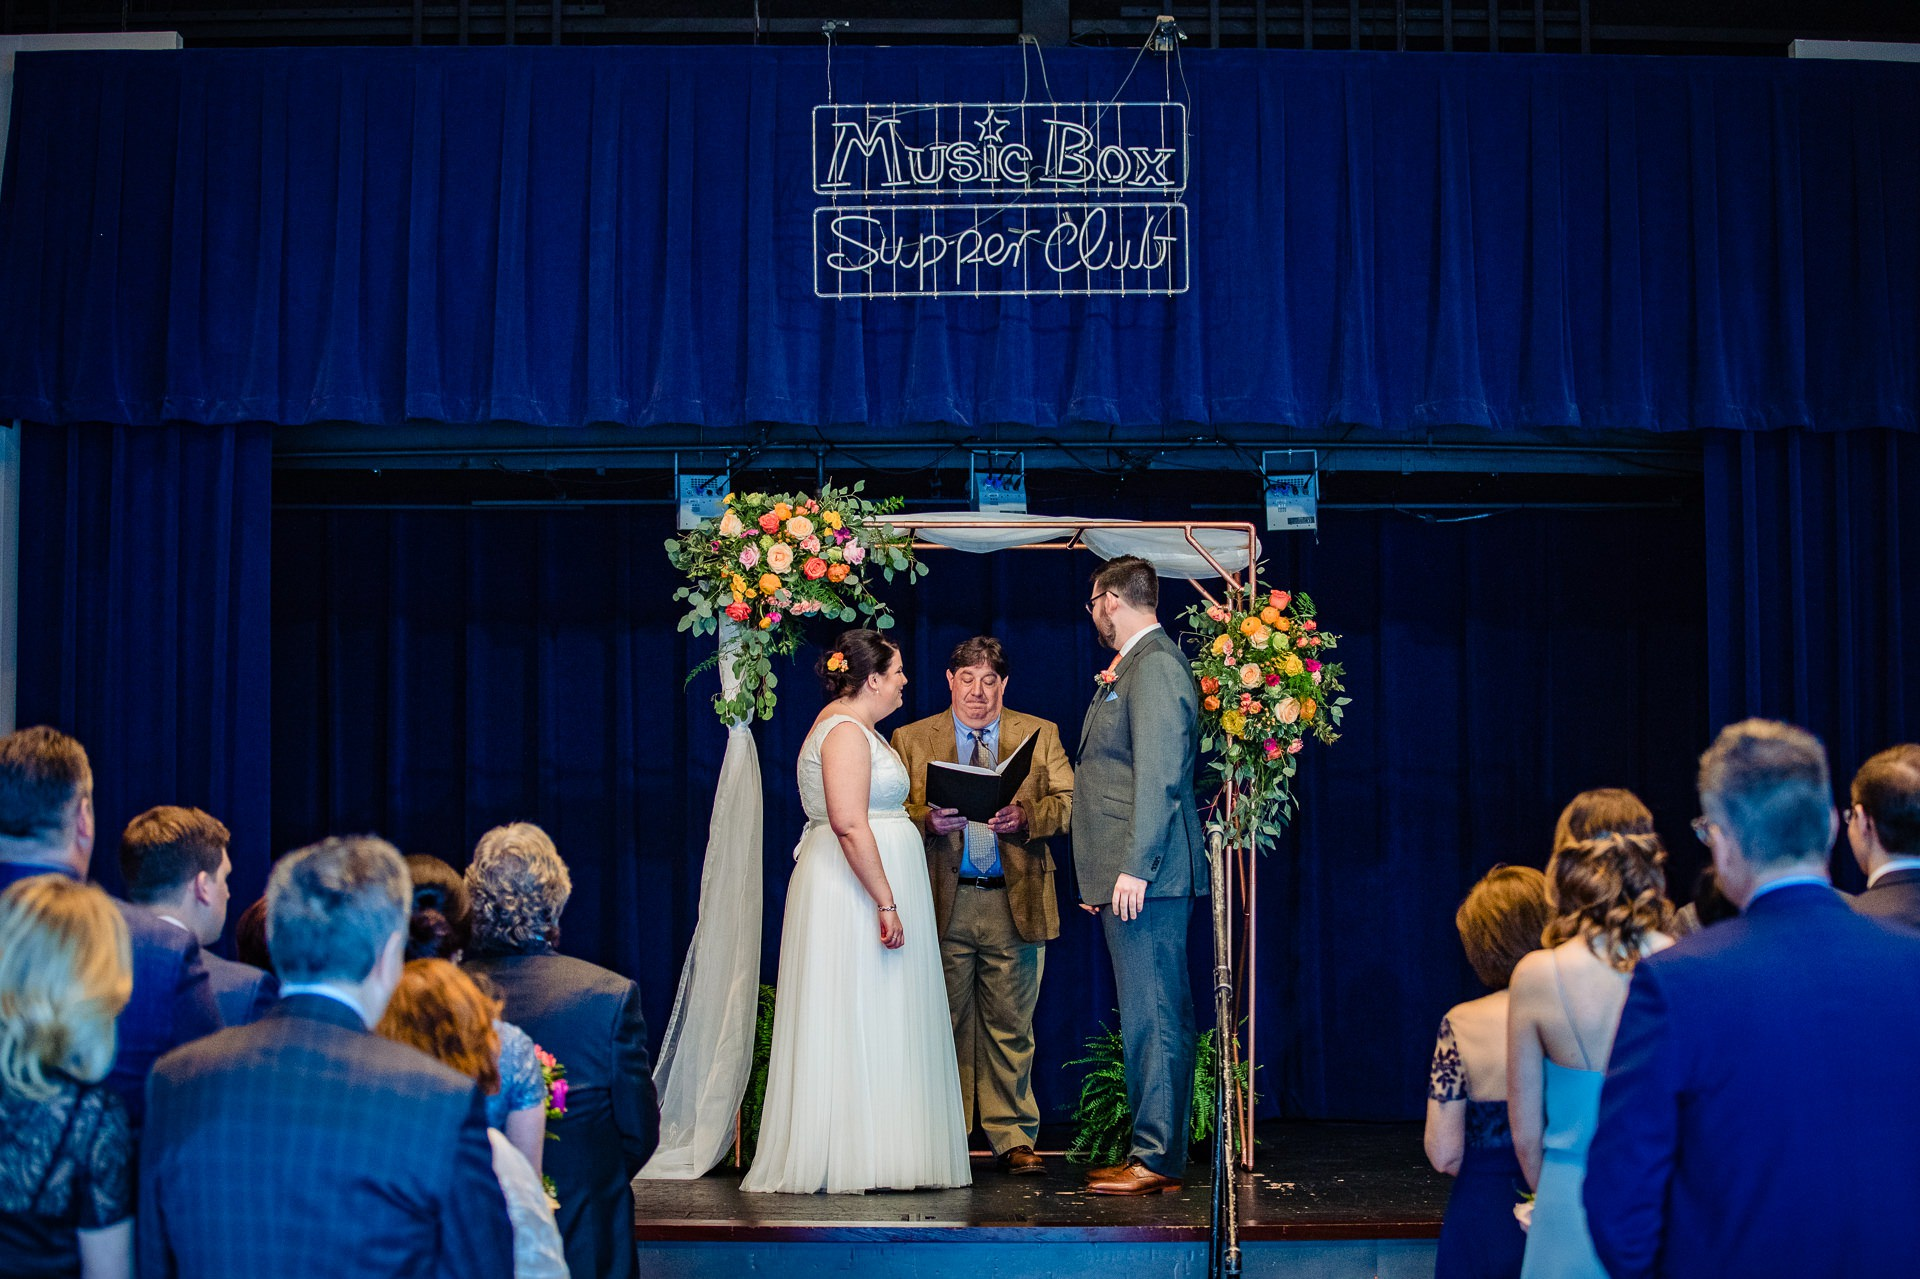 Music Box Supper Club Wedding Photos 33.jpg